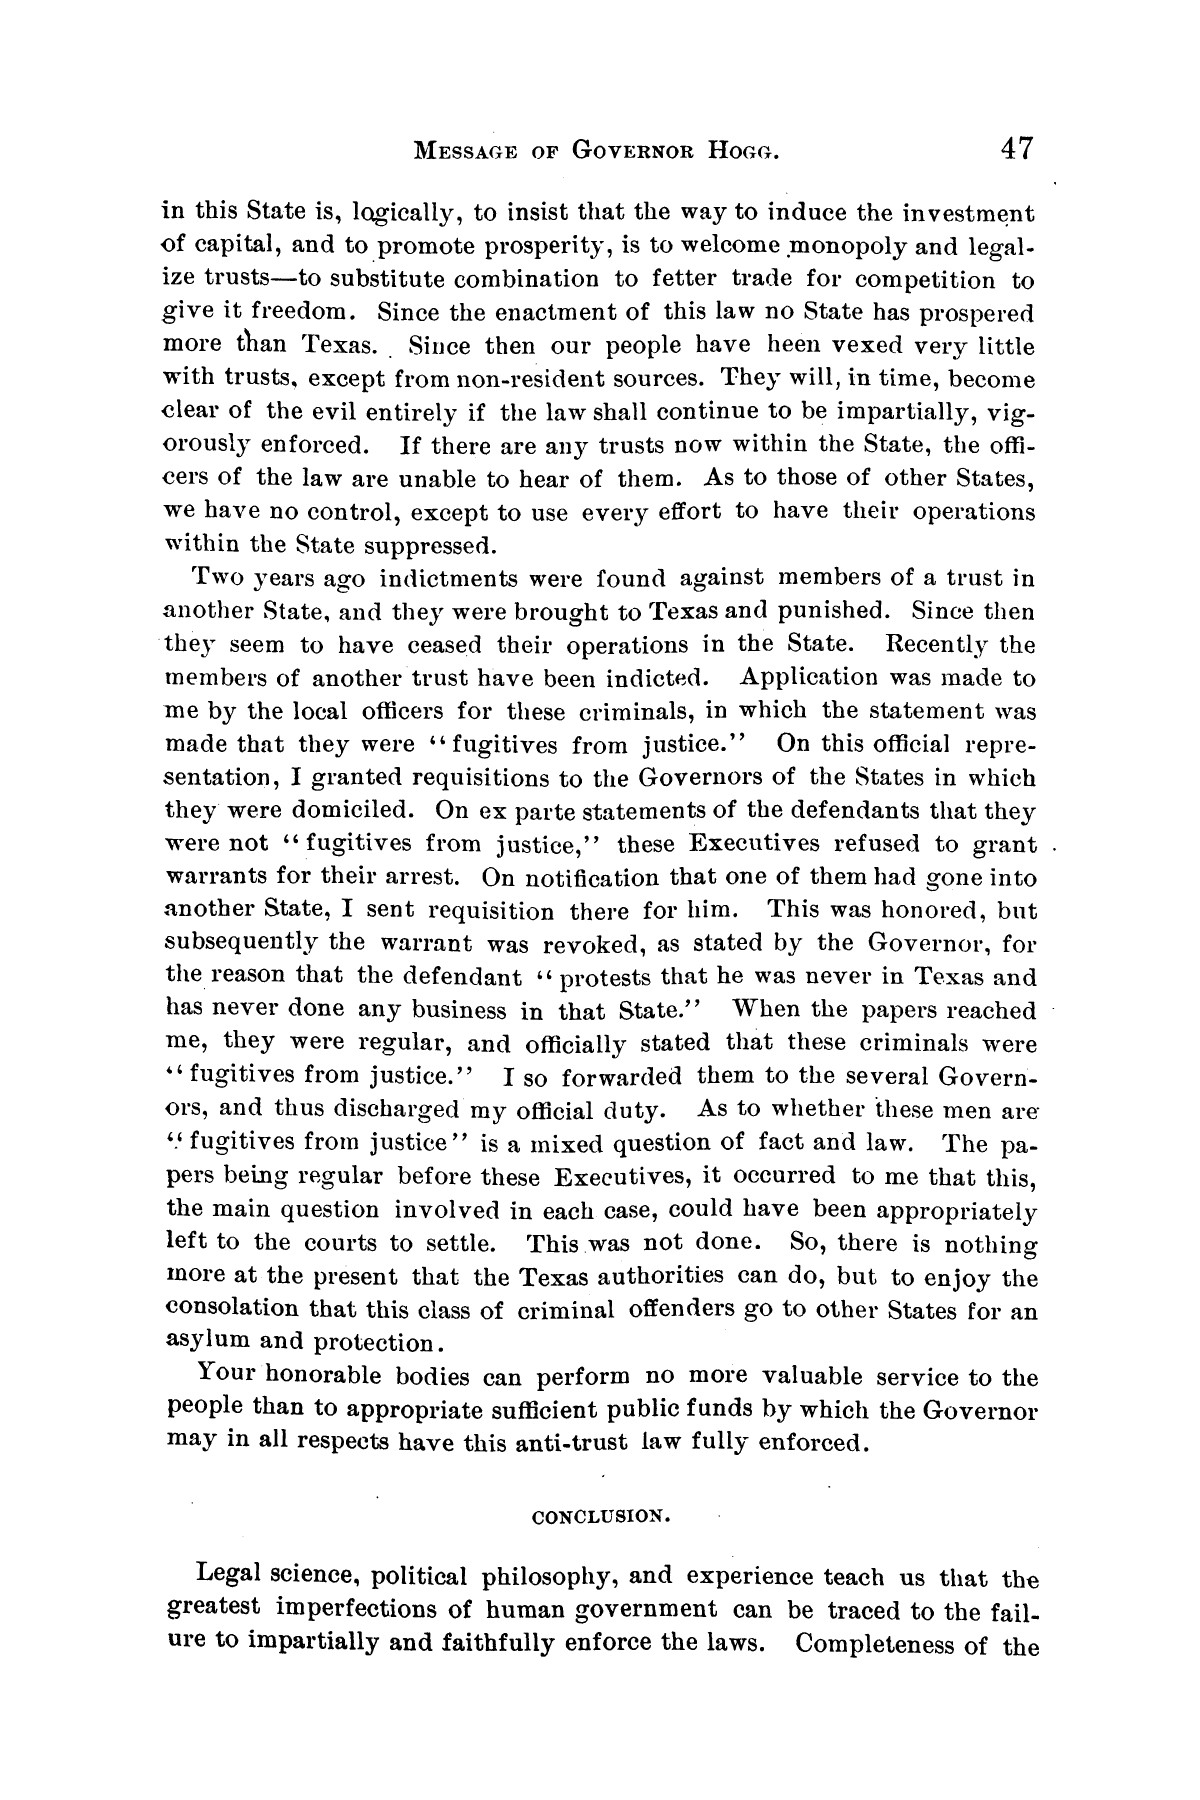 Message of Governor James S. Hogg to the twenty-fourth legislature of Texas                                                                                                      [Sequence #]: 47 of 48